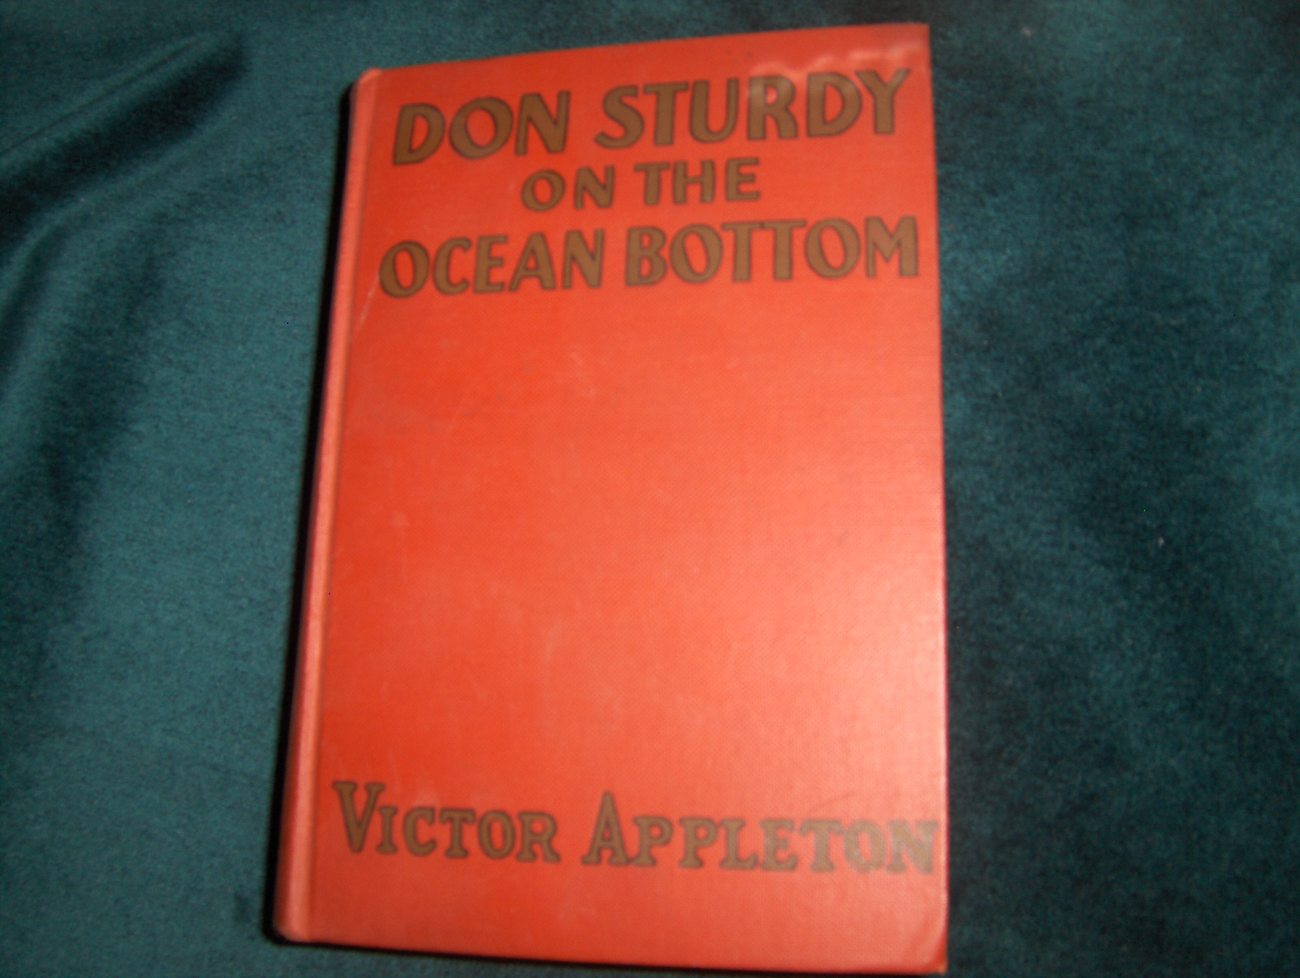 Don Sturdy Hardcover 1931 on the Ocean Bottom